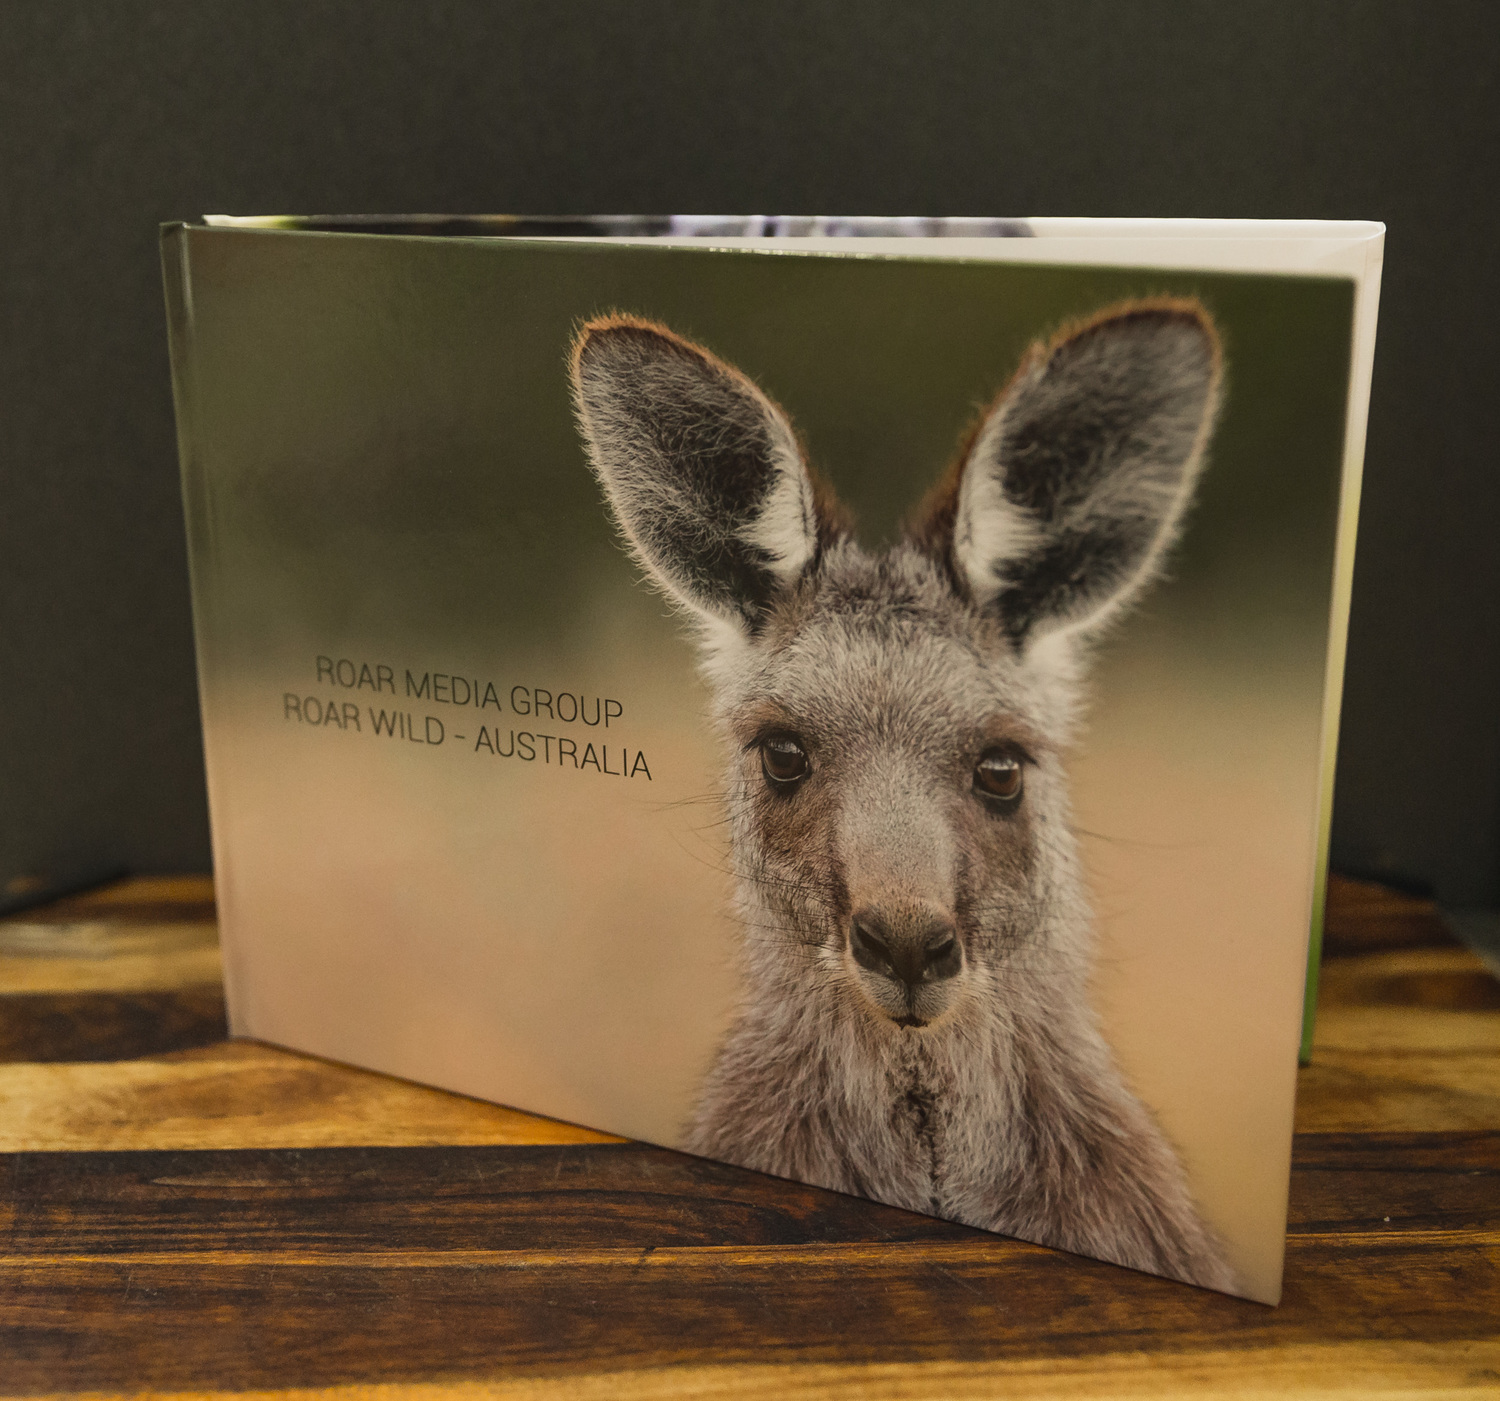 Roar Media Group Roar Wild Australia Coffee Table Book Limited